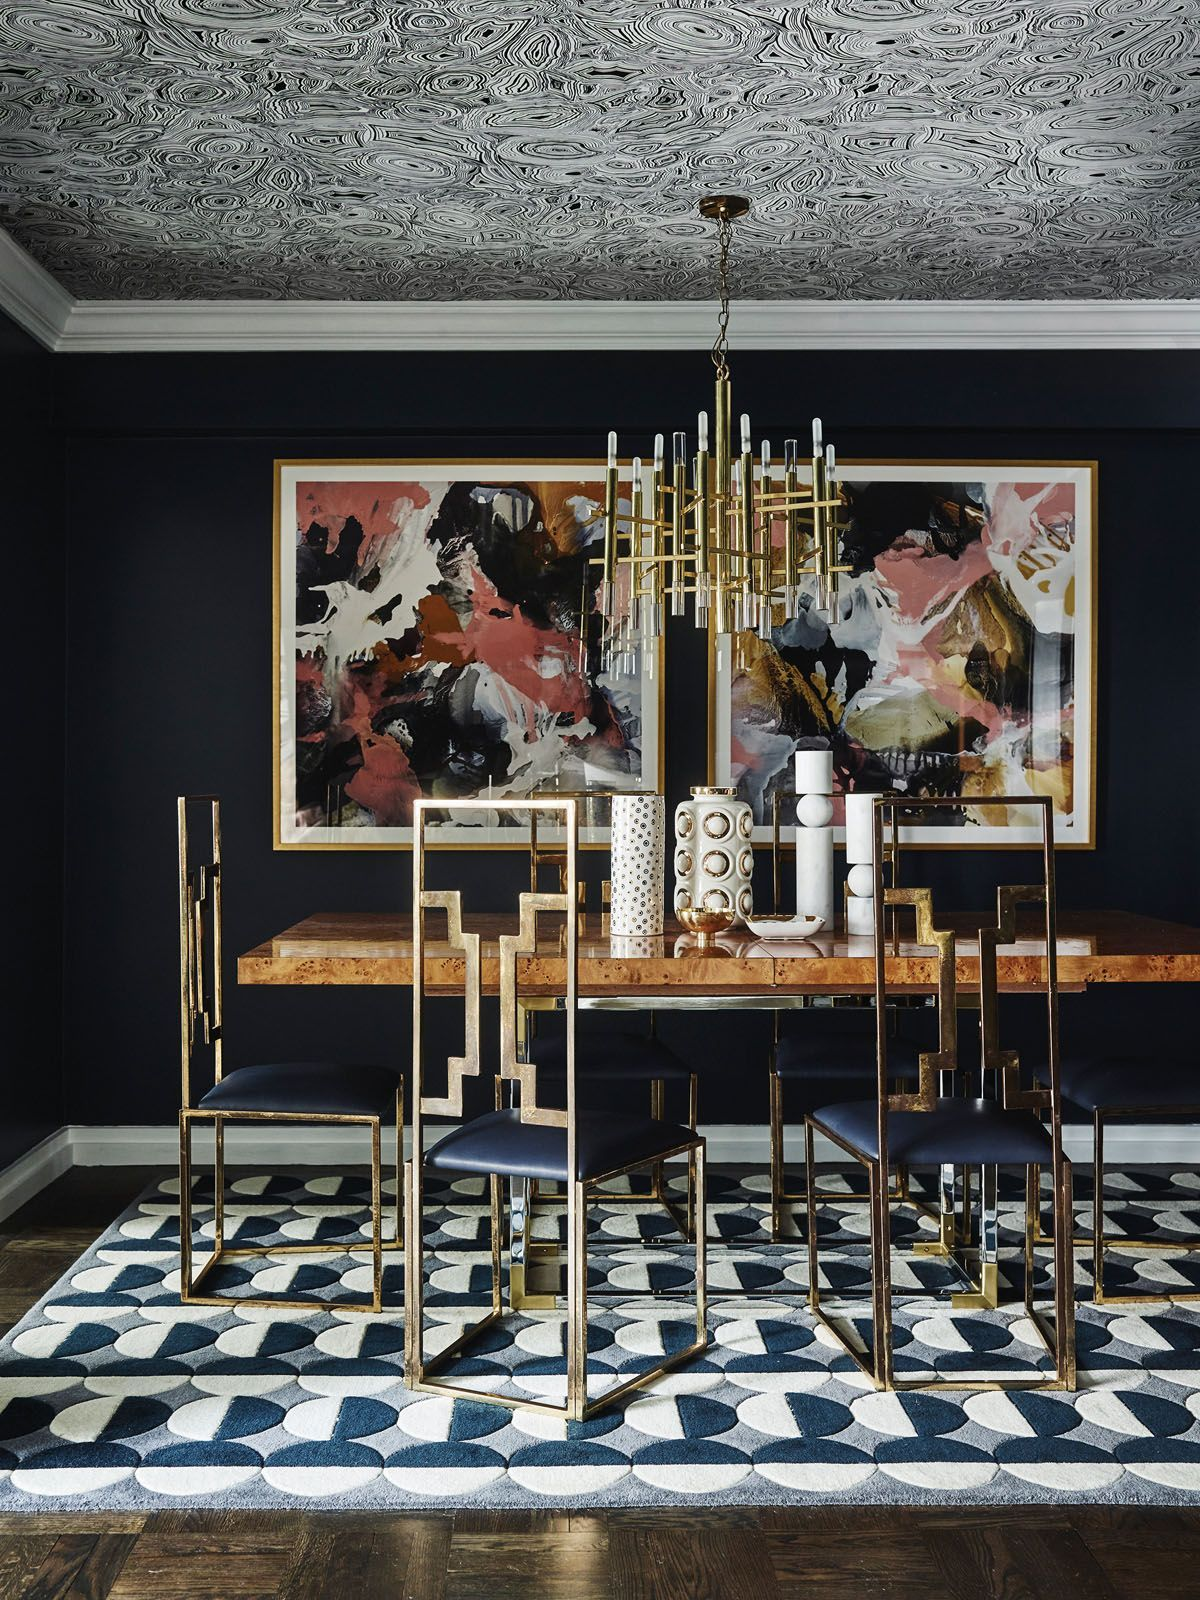 Glamorous and dramatic, interior designer Greg Natale added visual contrast to this moody dining room with striking furnishings Photography: Anson Smart, courtesy of Rizzoli New York